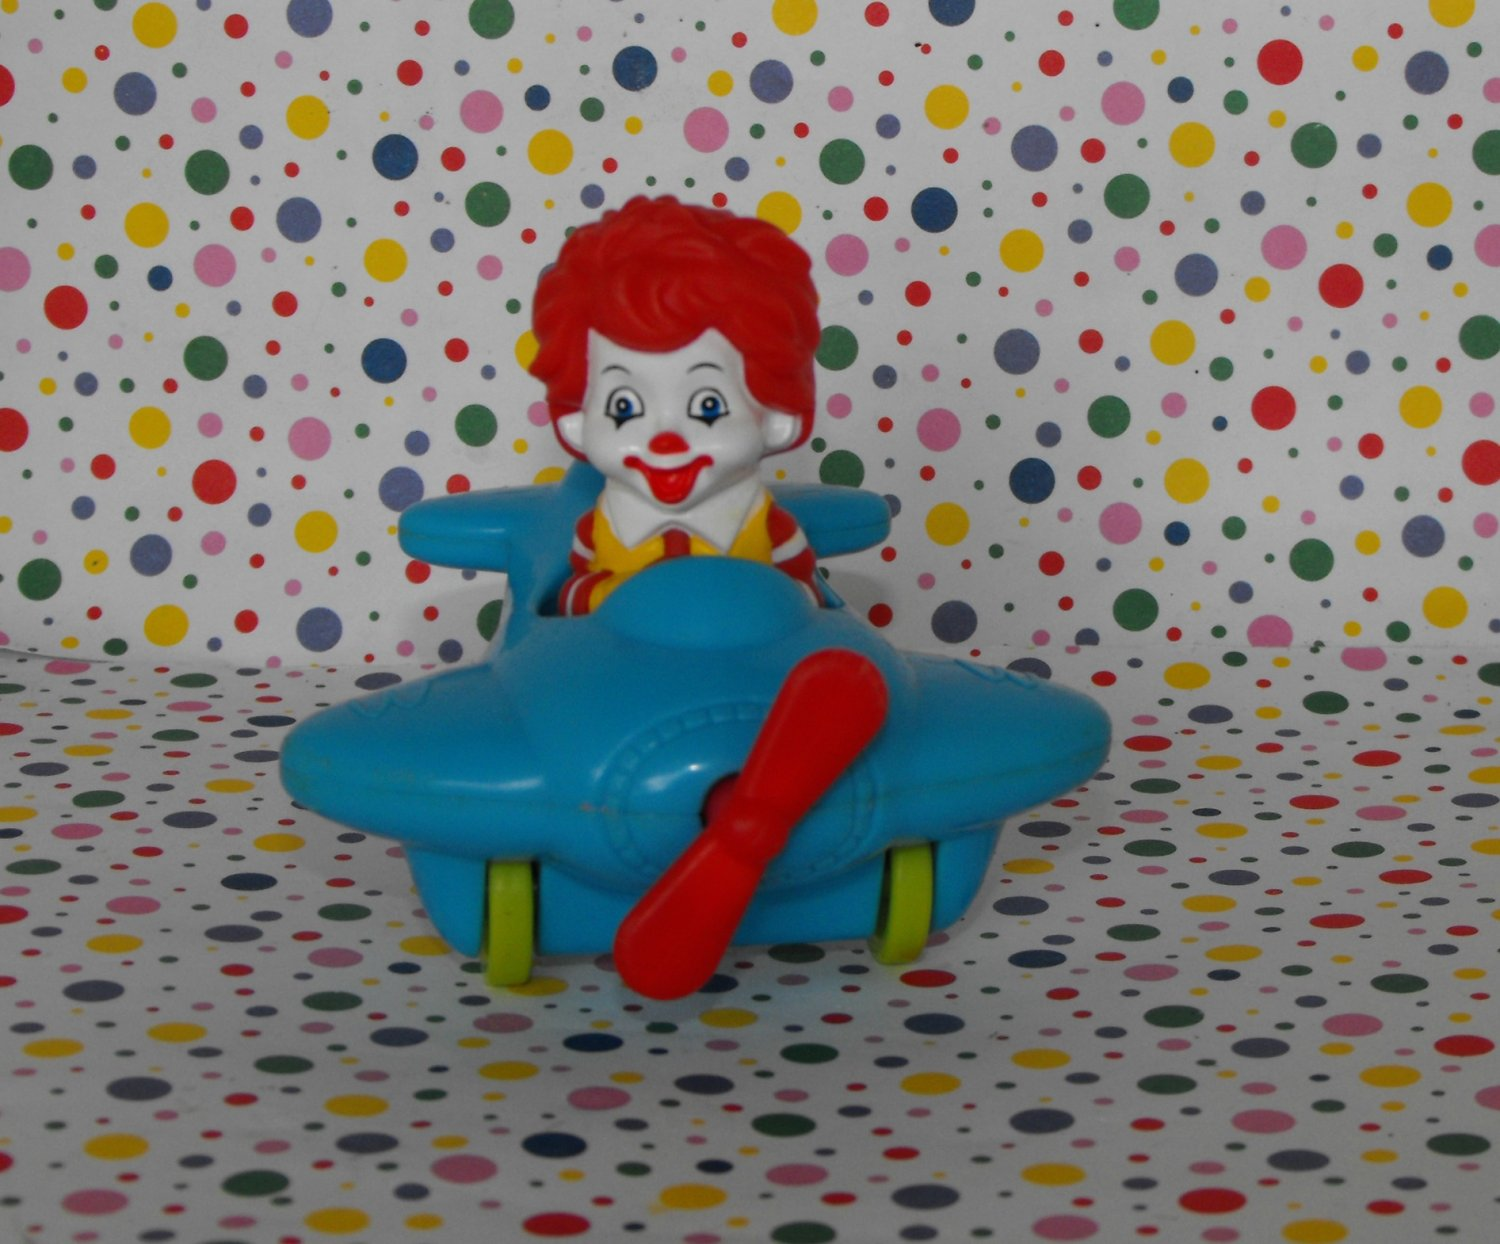 McDonald's Ronald McDonald Airplane Under 3 Happy Meal Toy